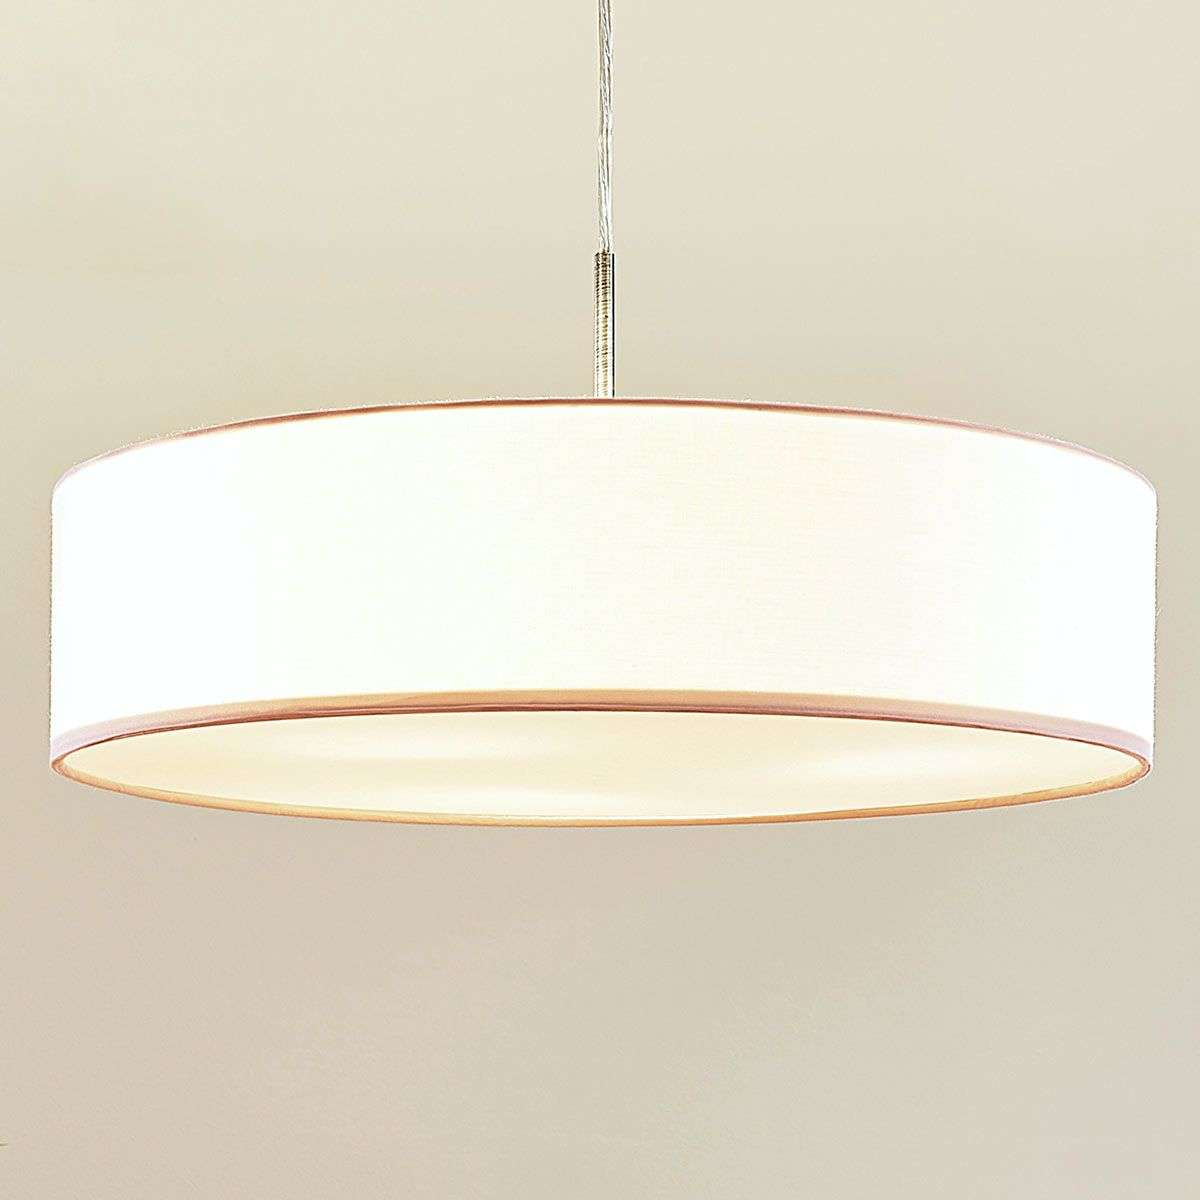 White sebatin led fabric pendant lamp lights white sebatin led fabric pendant lamp 9620321 32 mozeypictures Images